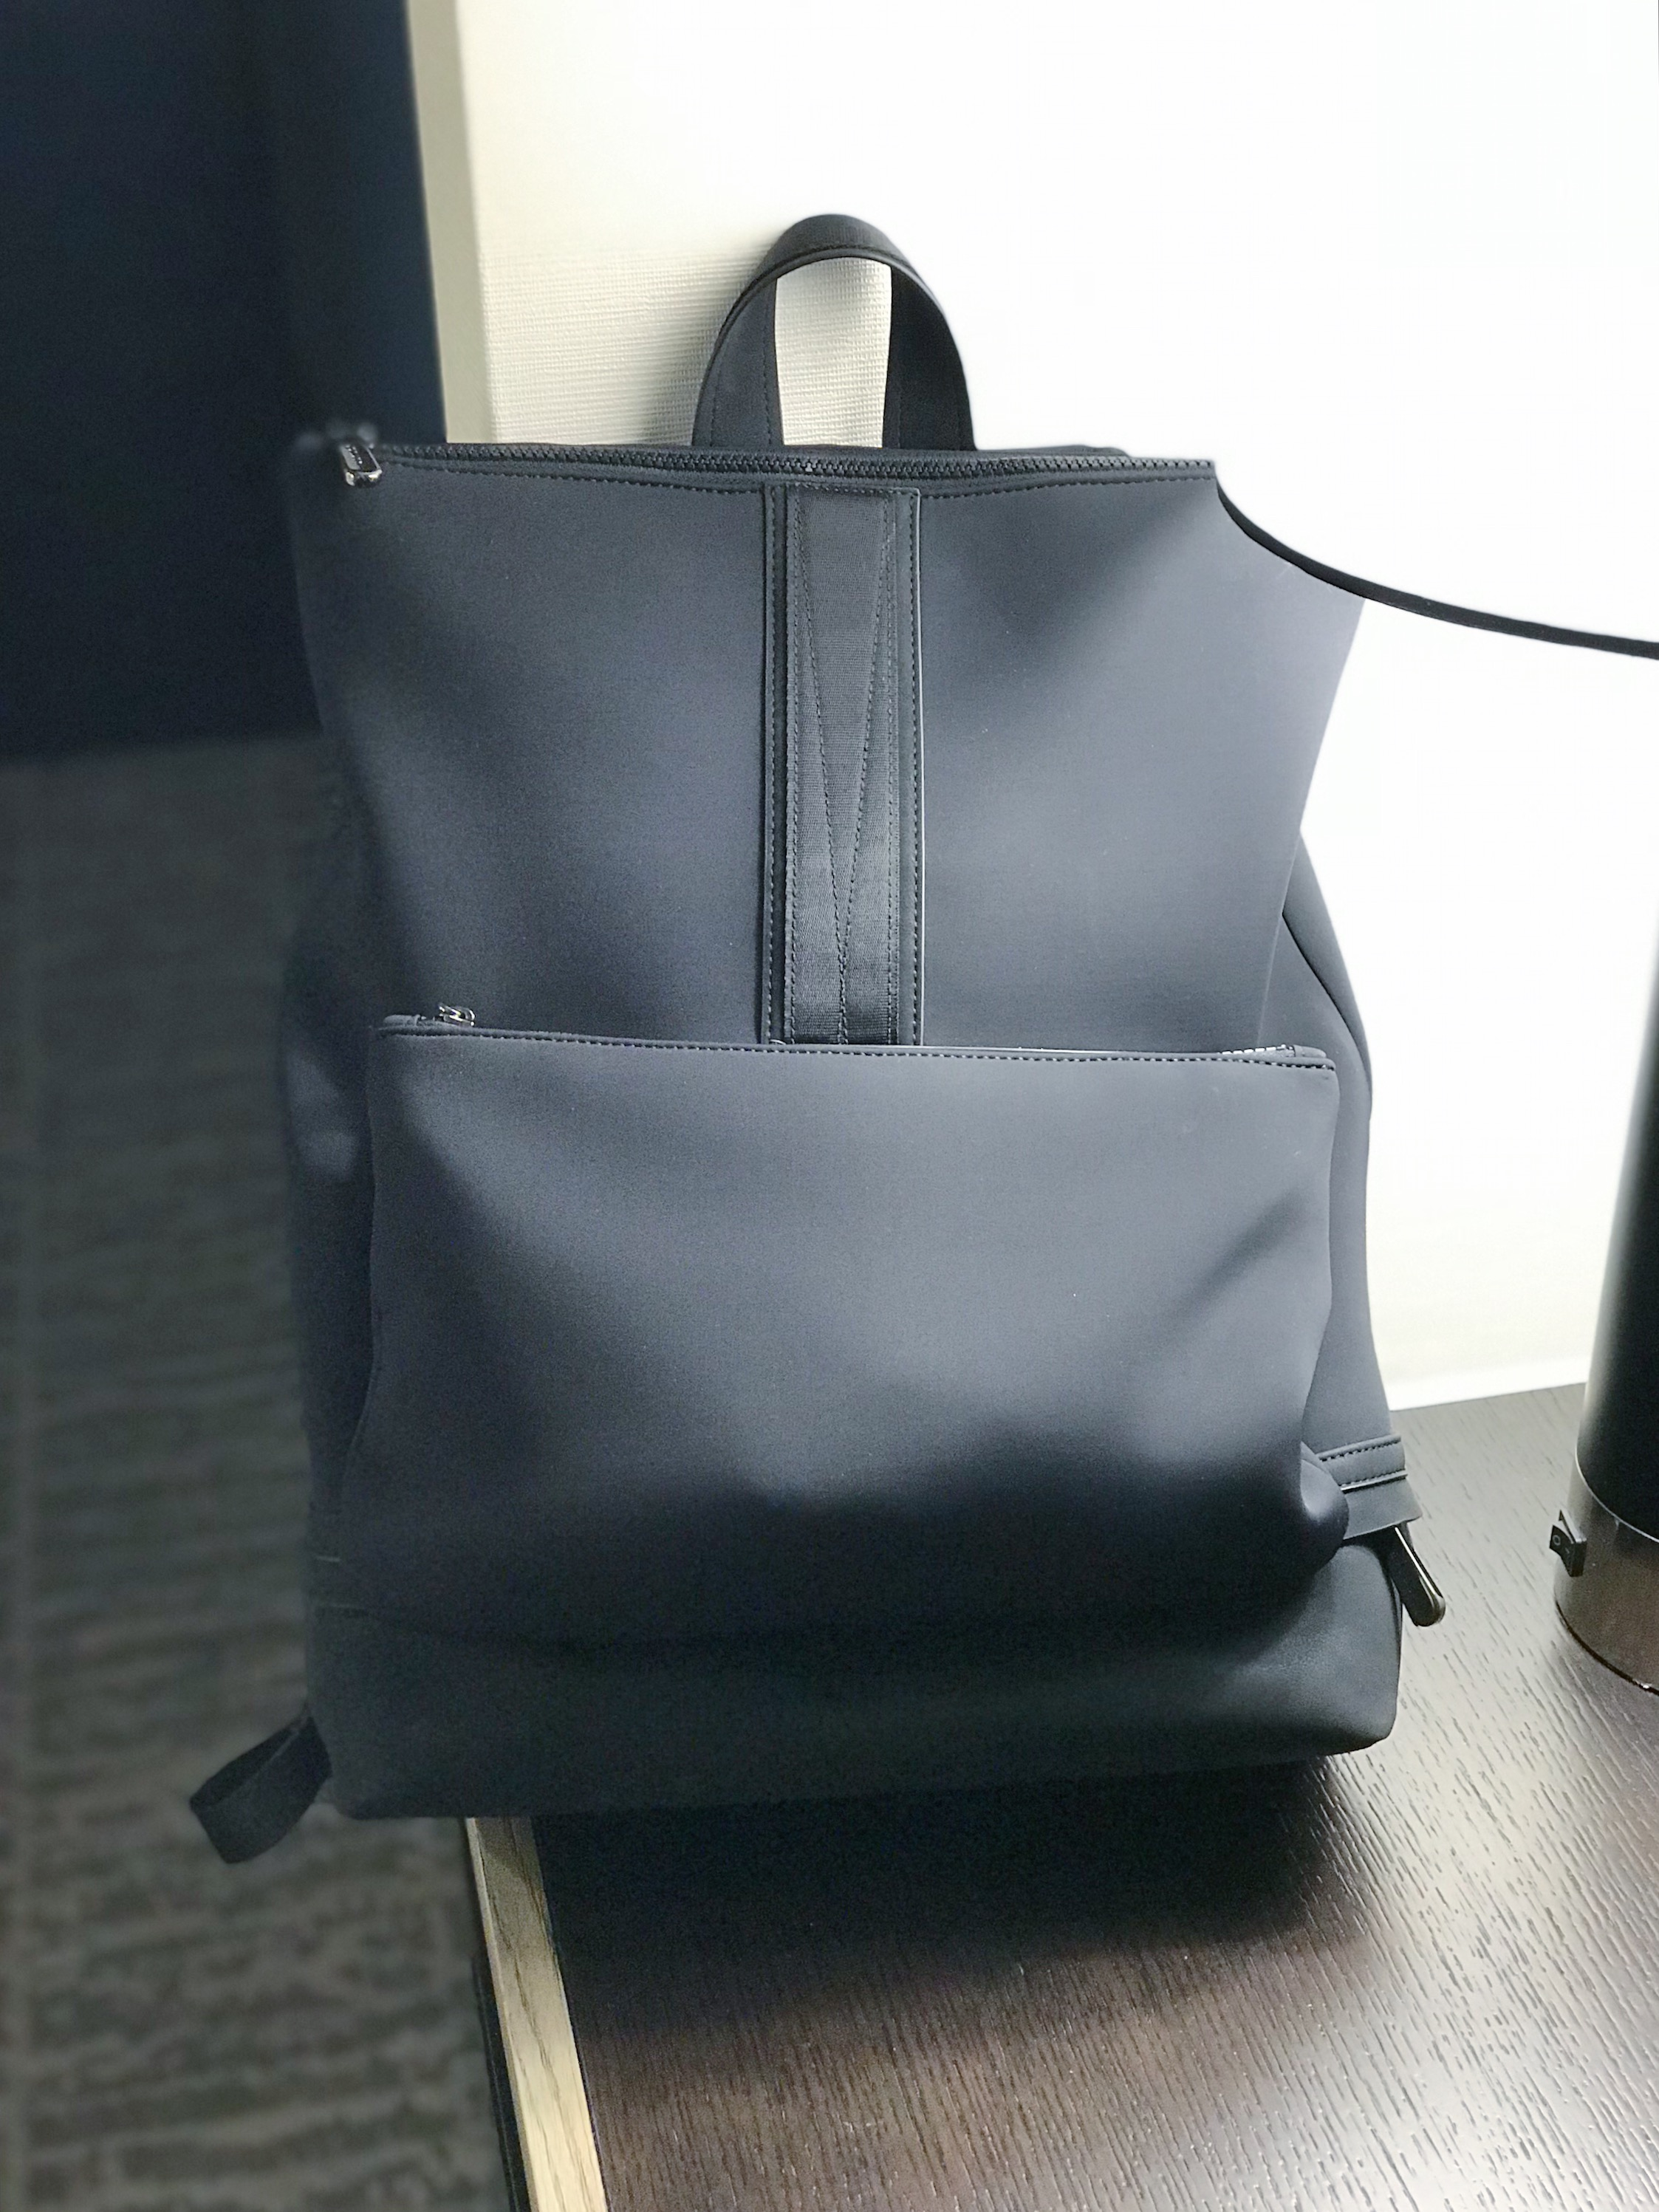 Caraa x Athleta Convertible Backpack